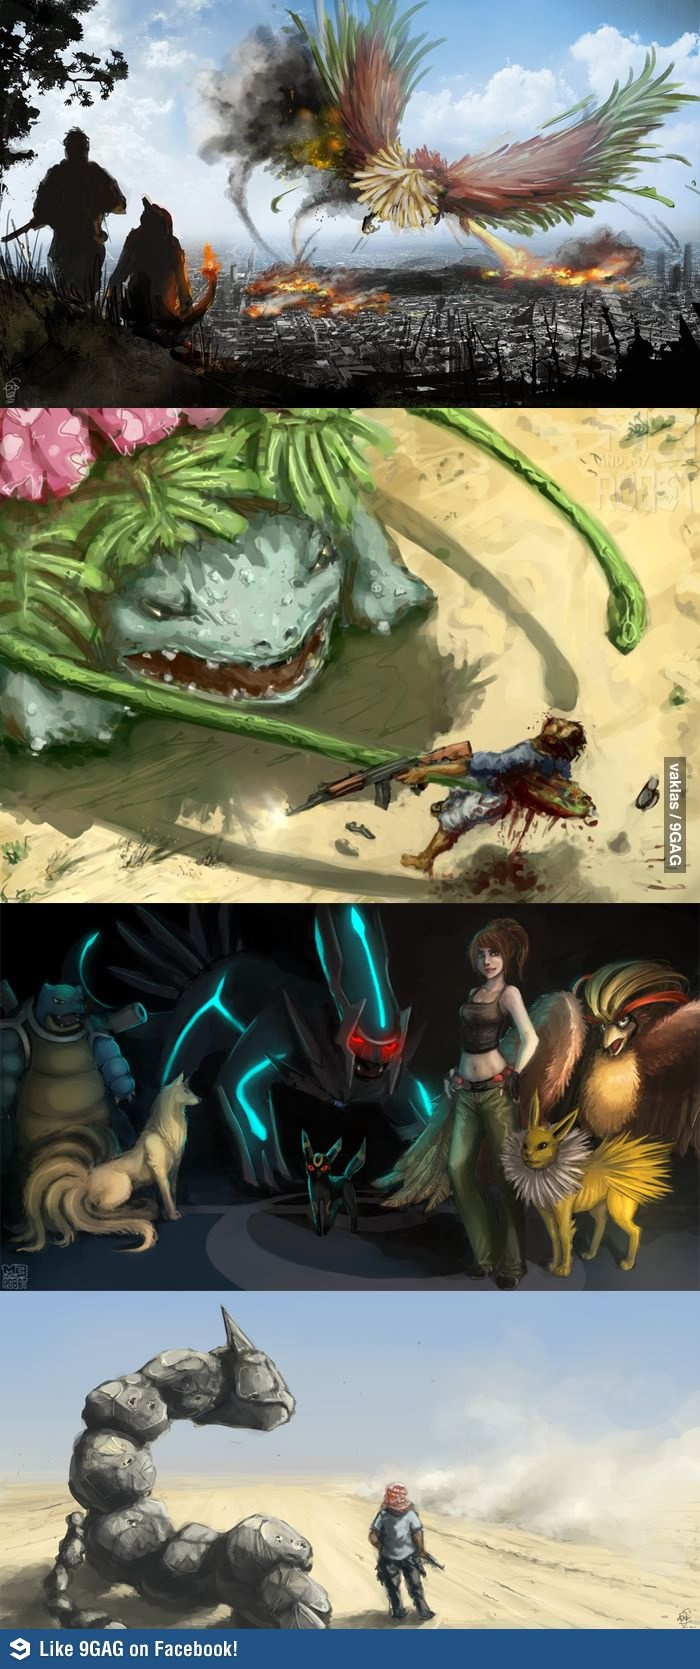 Pokemon could be used for the purpose of good or evil in this world...which will you choose?